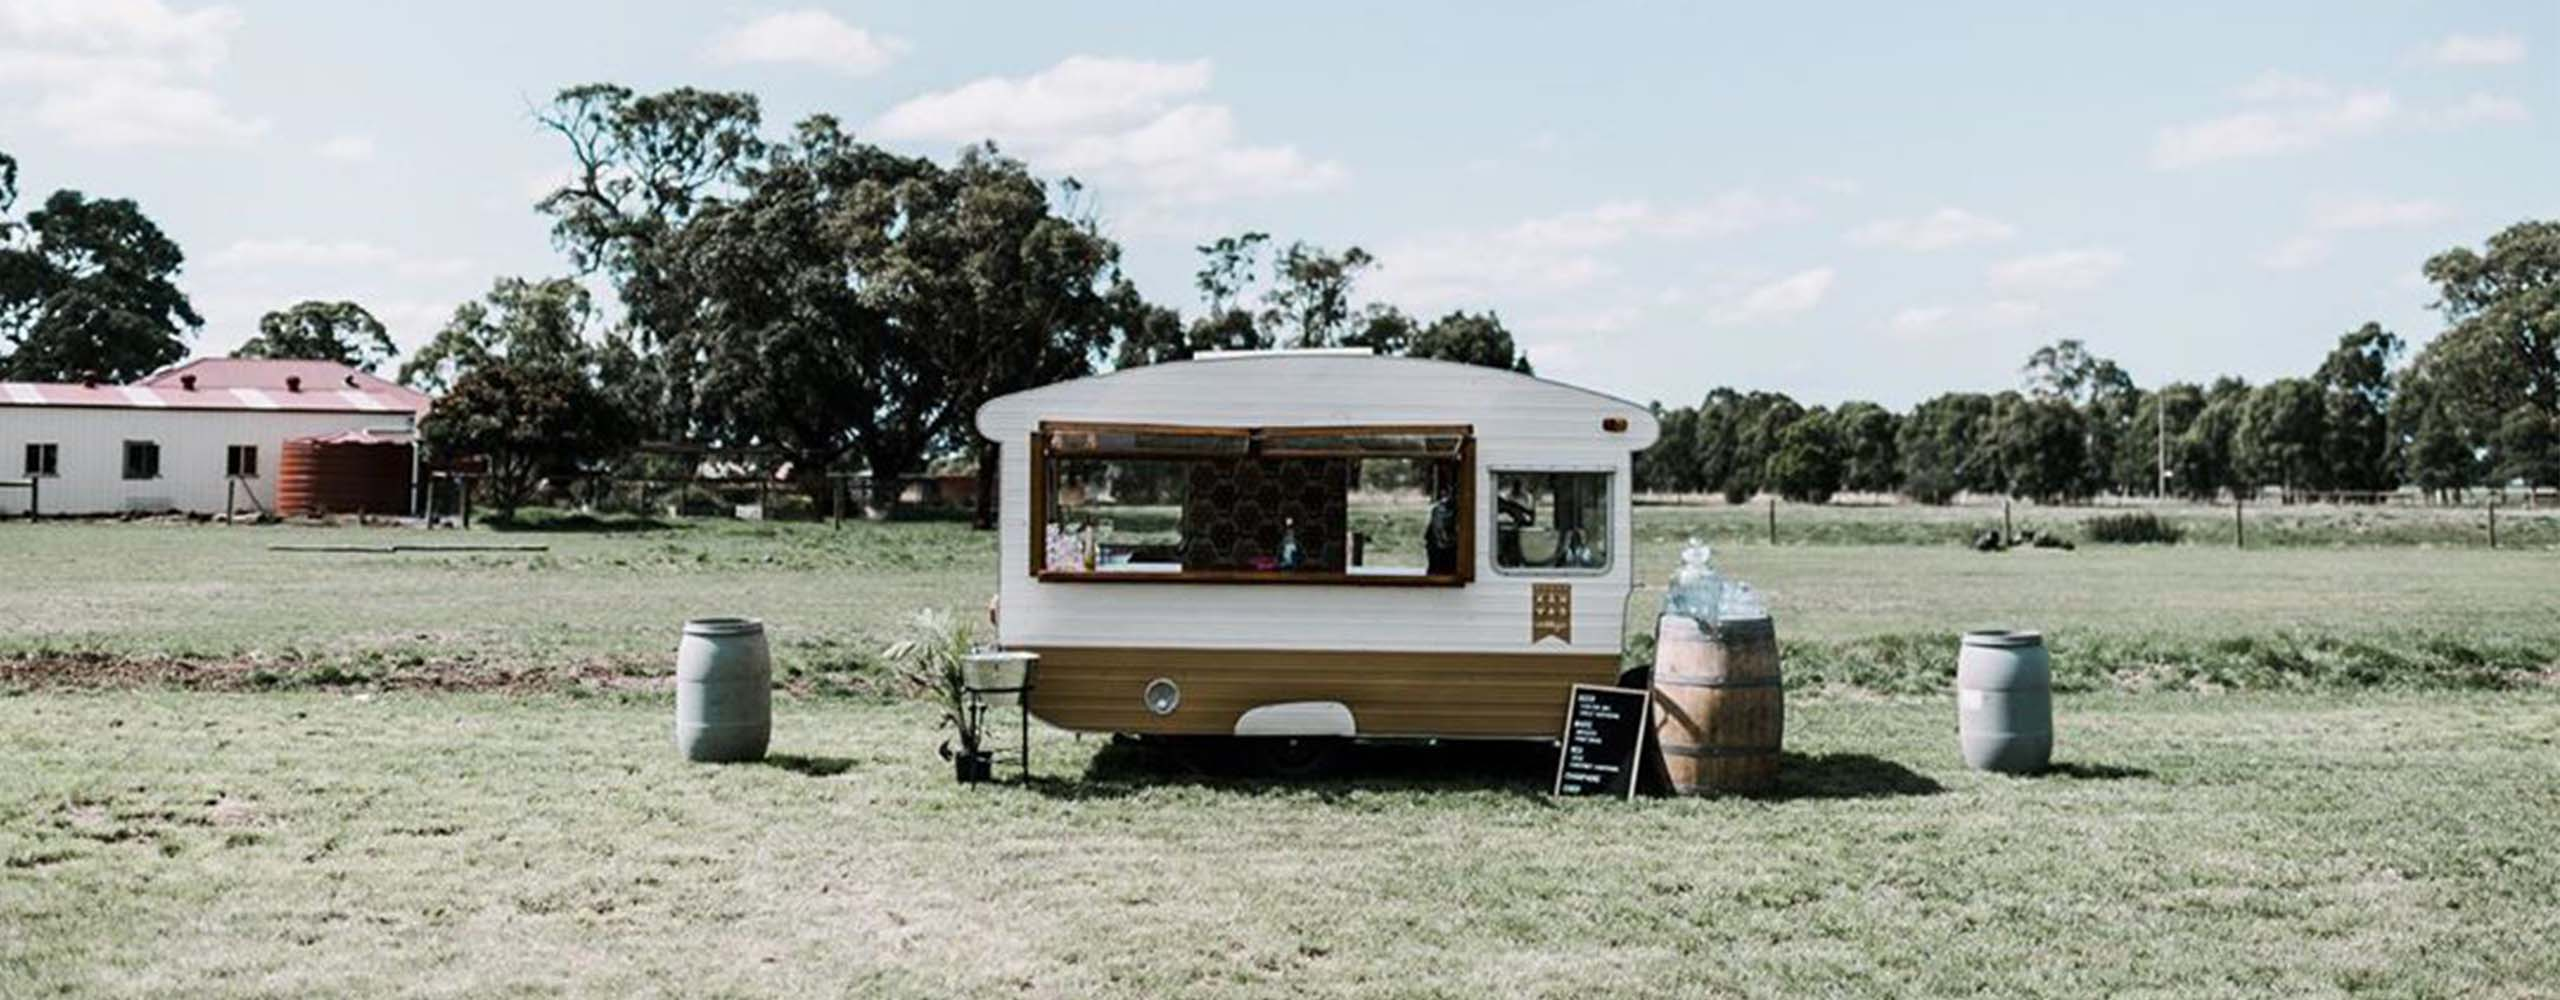 Caravan bar — wine barrels and floral styling at outdoor wedding in  regional Victoria